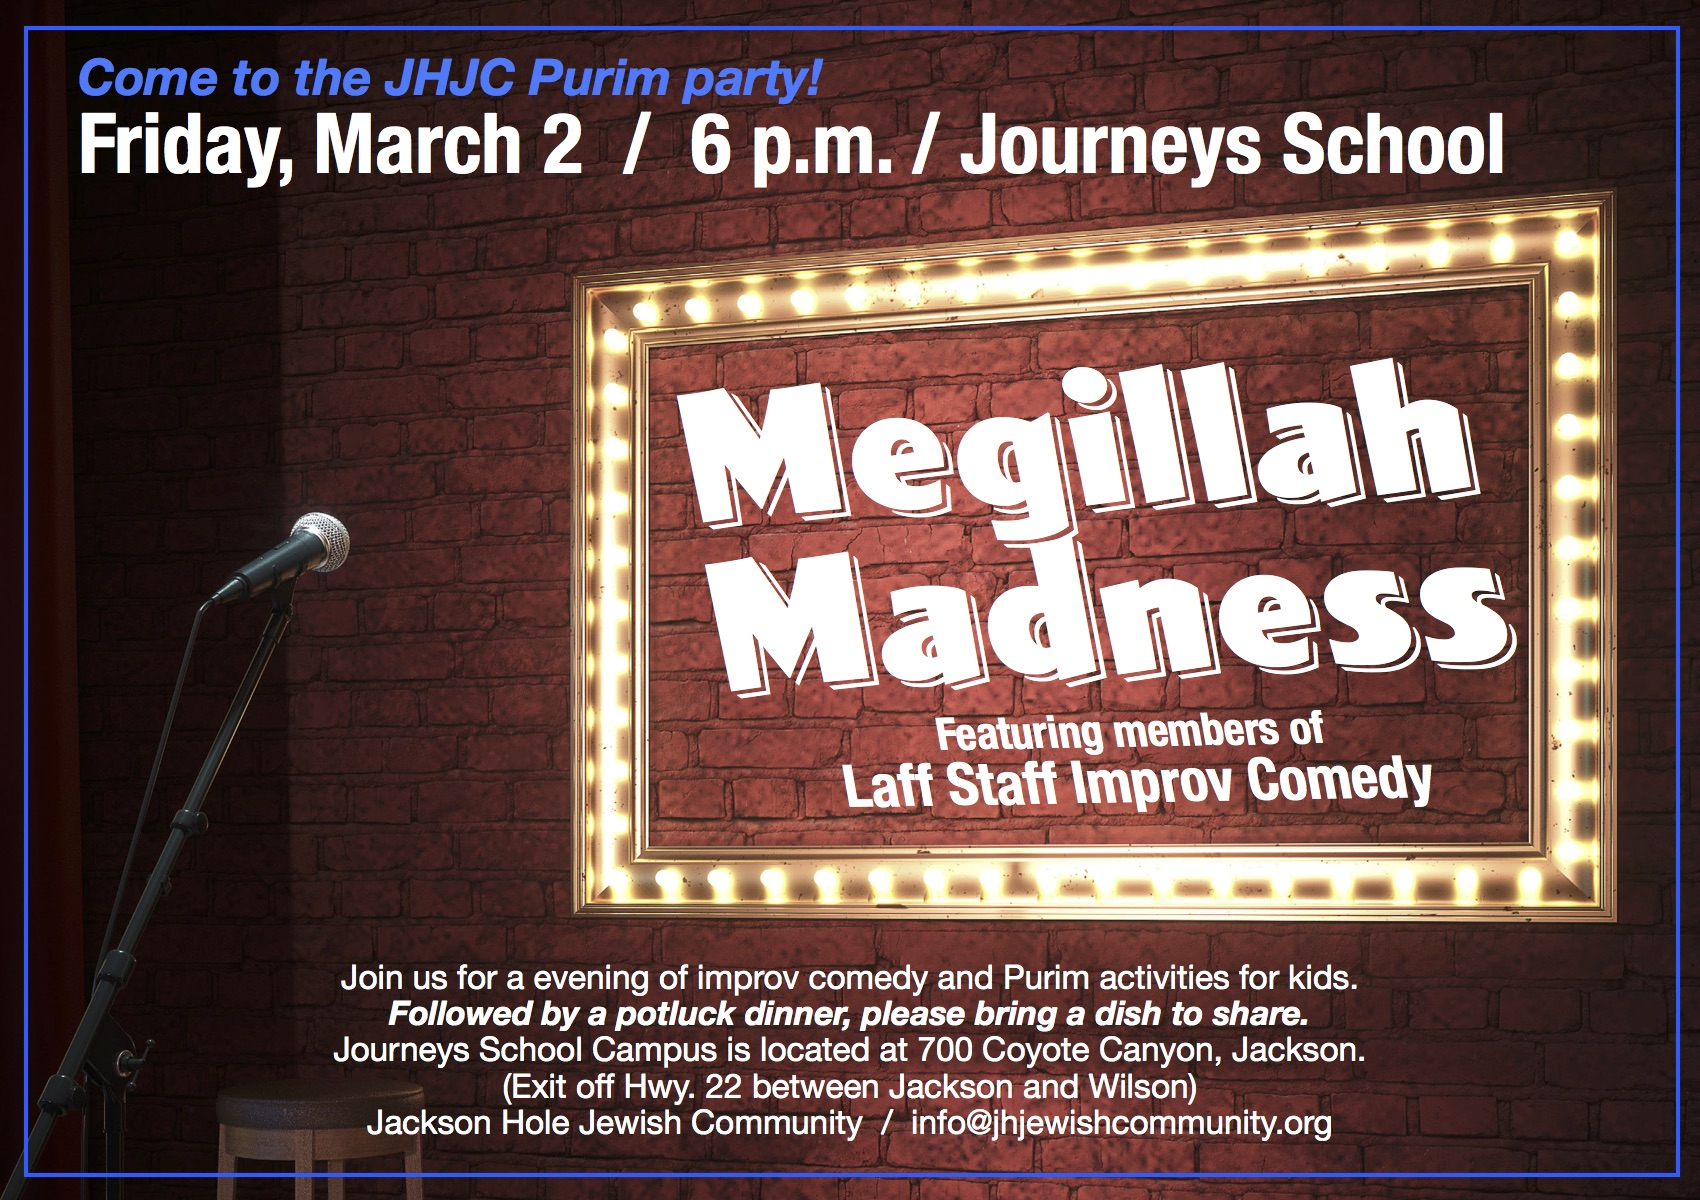 Megillah Madness: Purim Shabbat & Improv Comedy Night @ Journeys School Campus | Jackson | Wyoming | United States